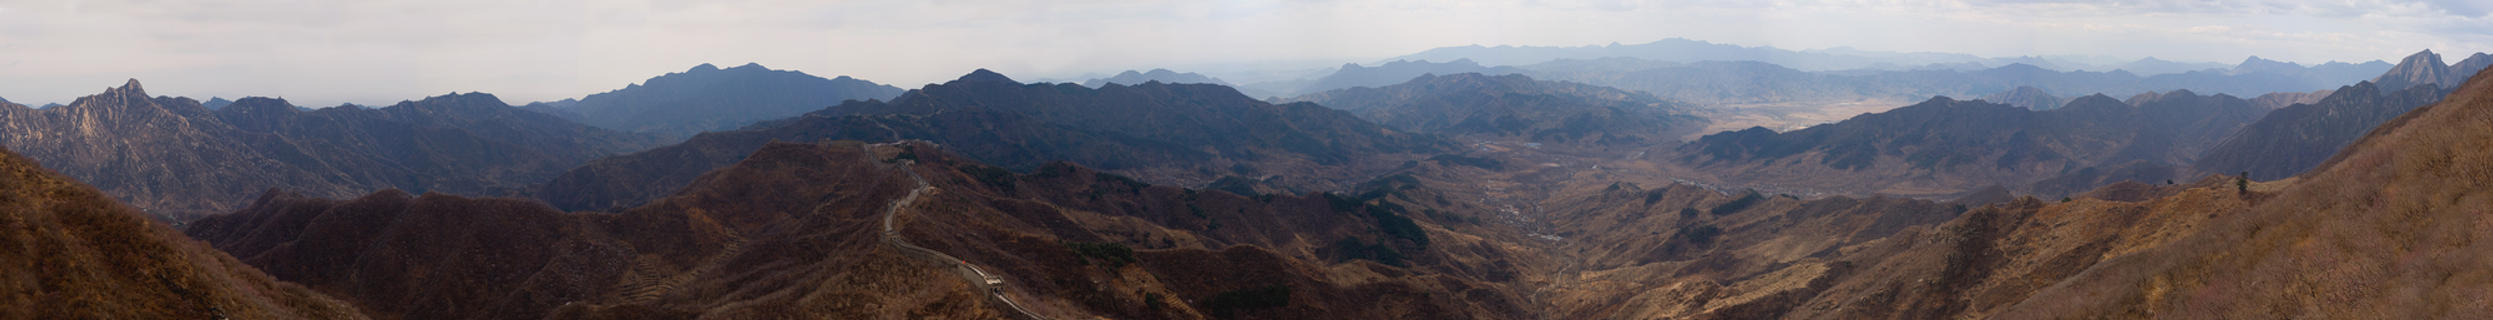 Great Wall Environs Pano by themobius